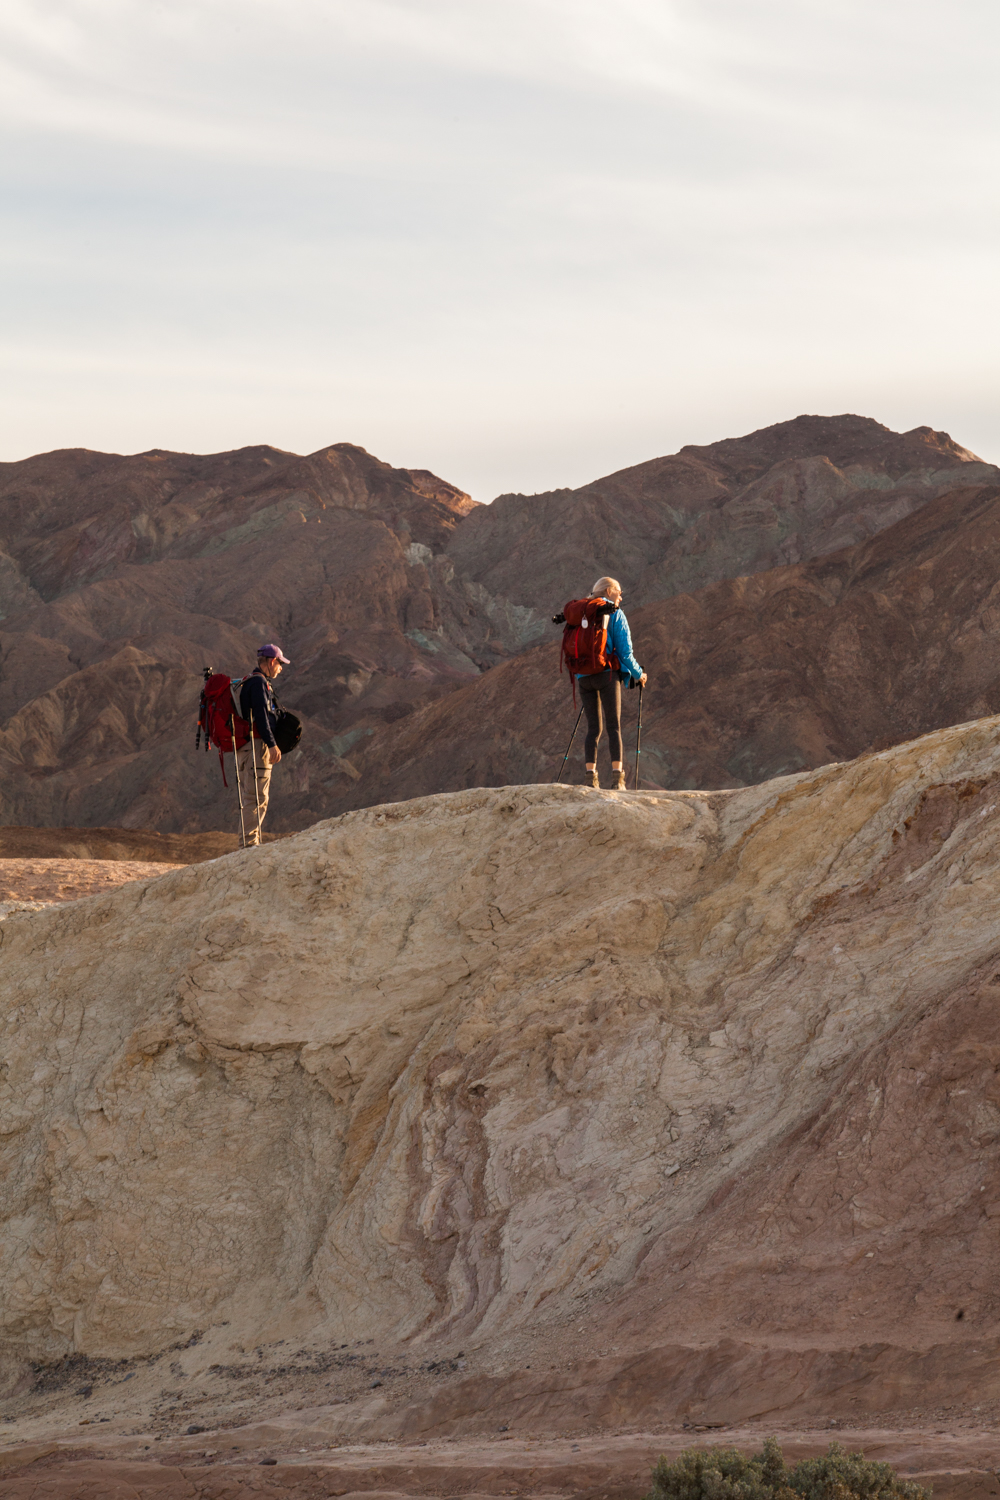 Helynn_Ospina_Travel_Death_Valley_California_01601-23.jpg